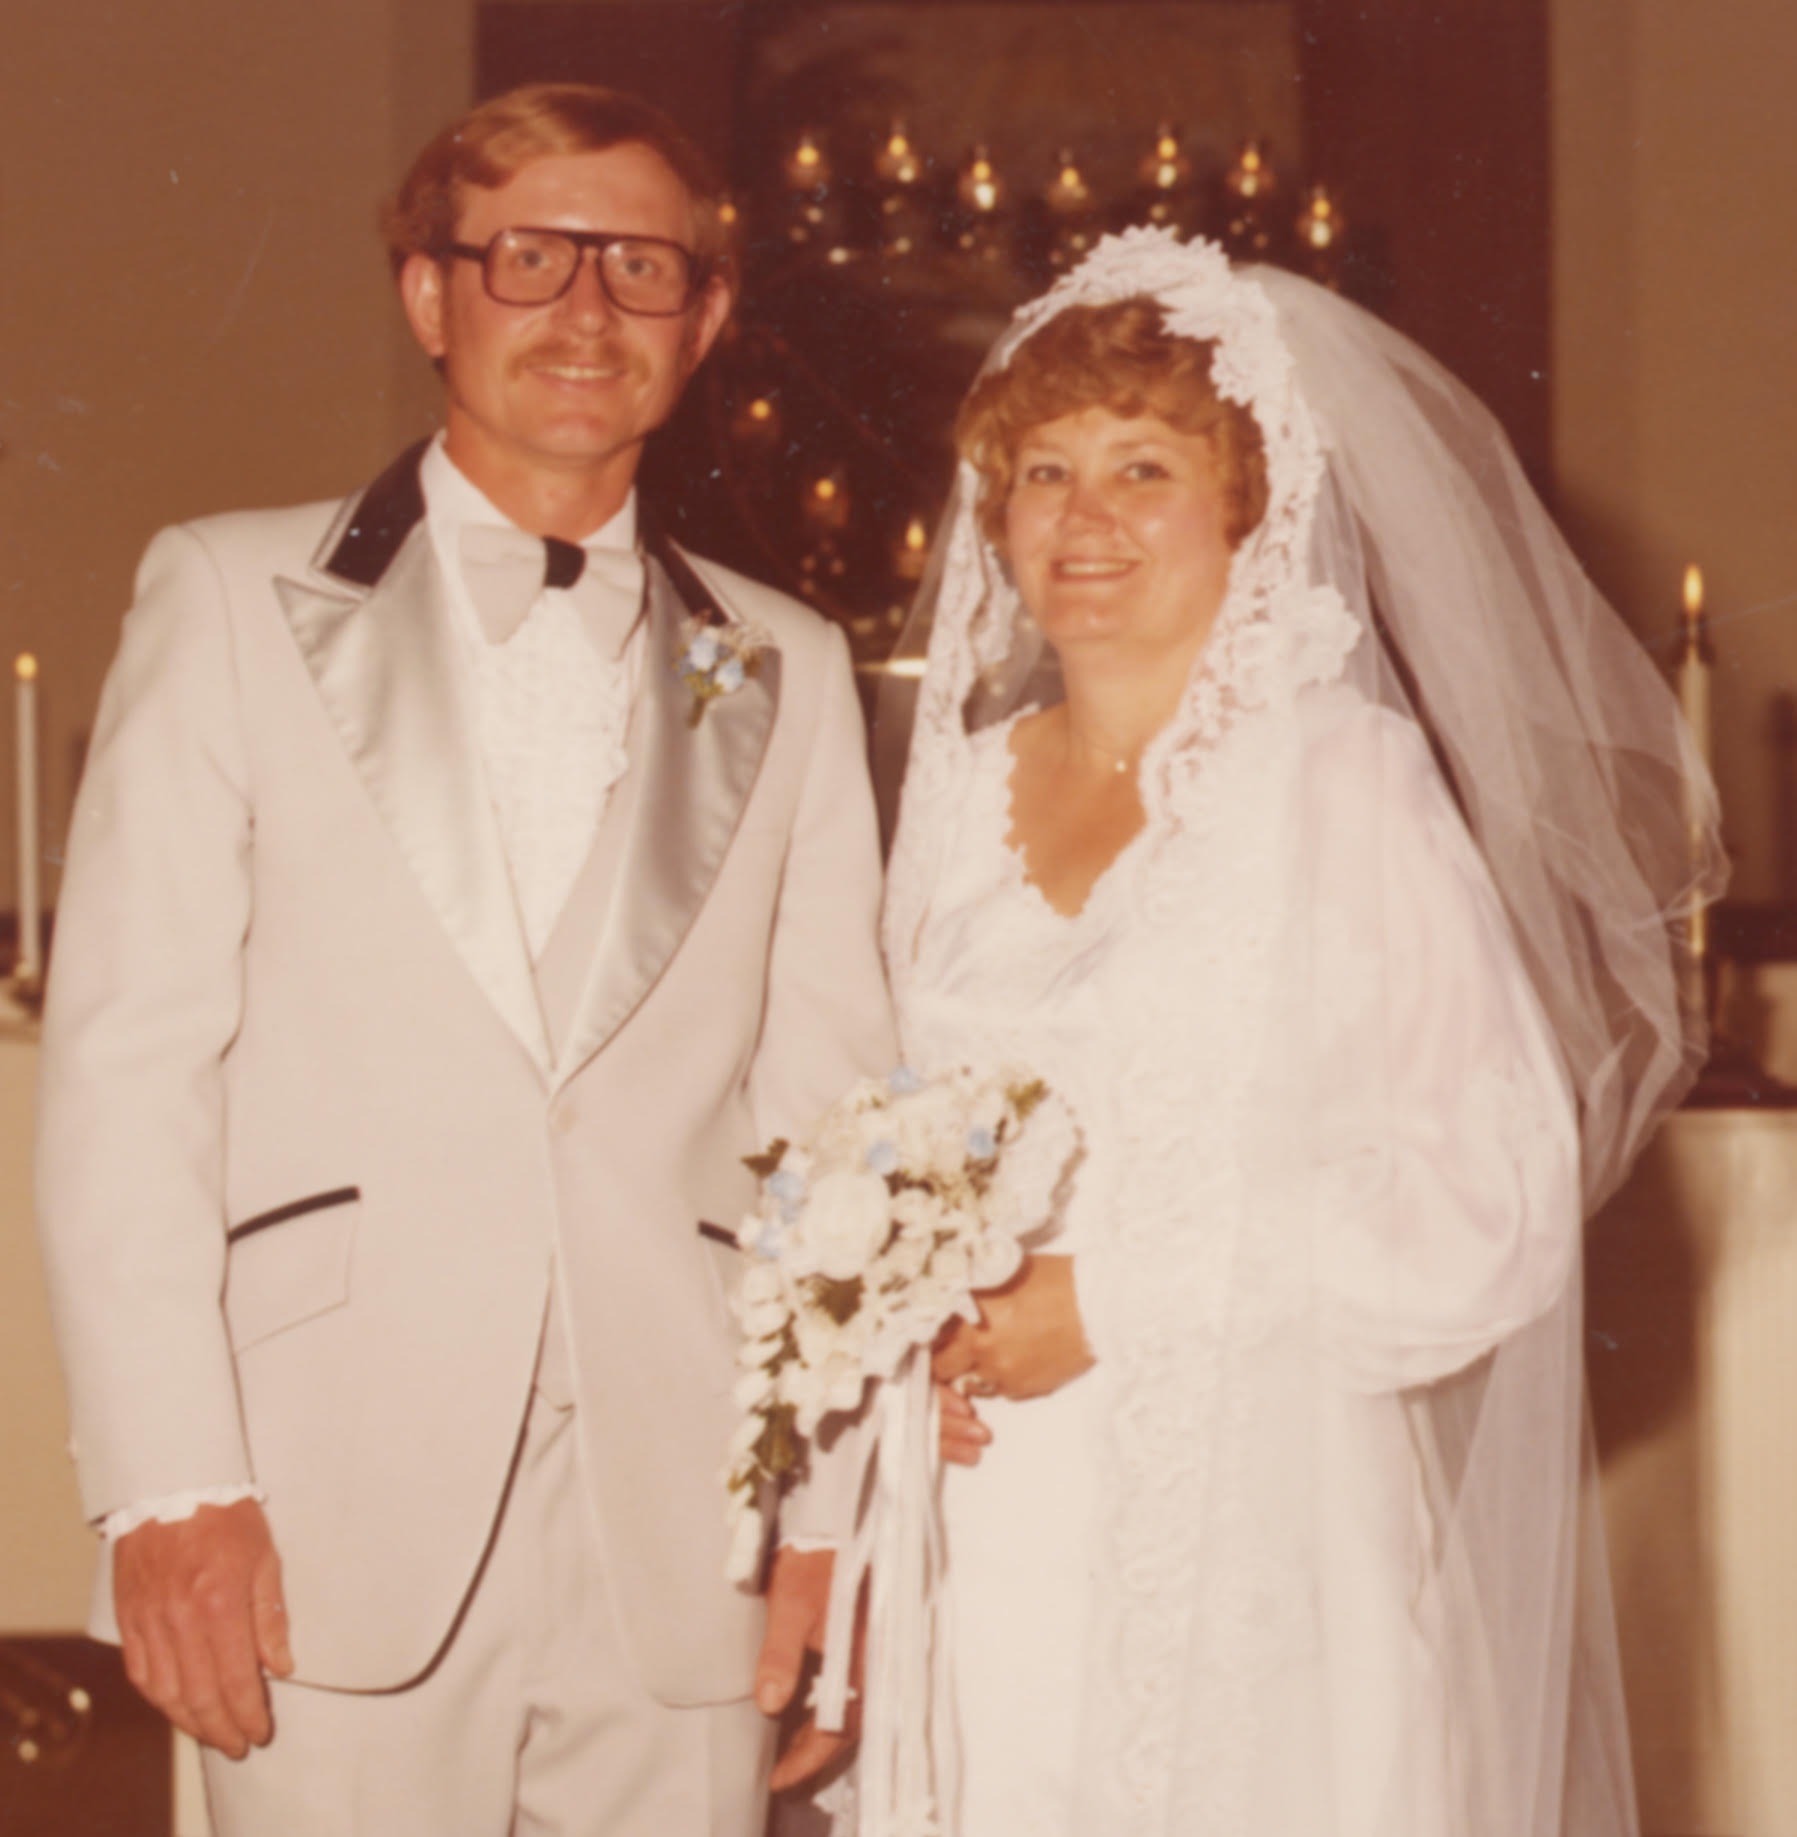 Mr. and Mrs. Ronald C. Lind